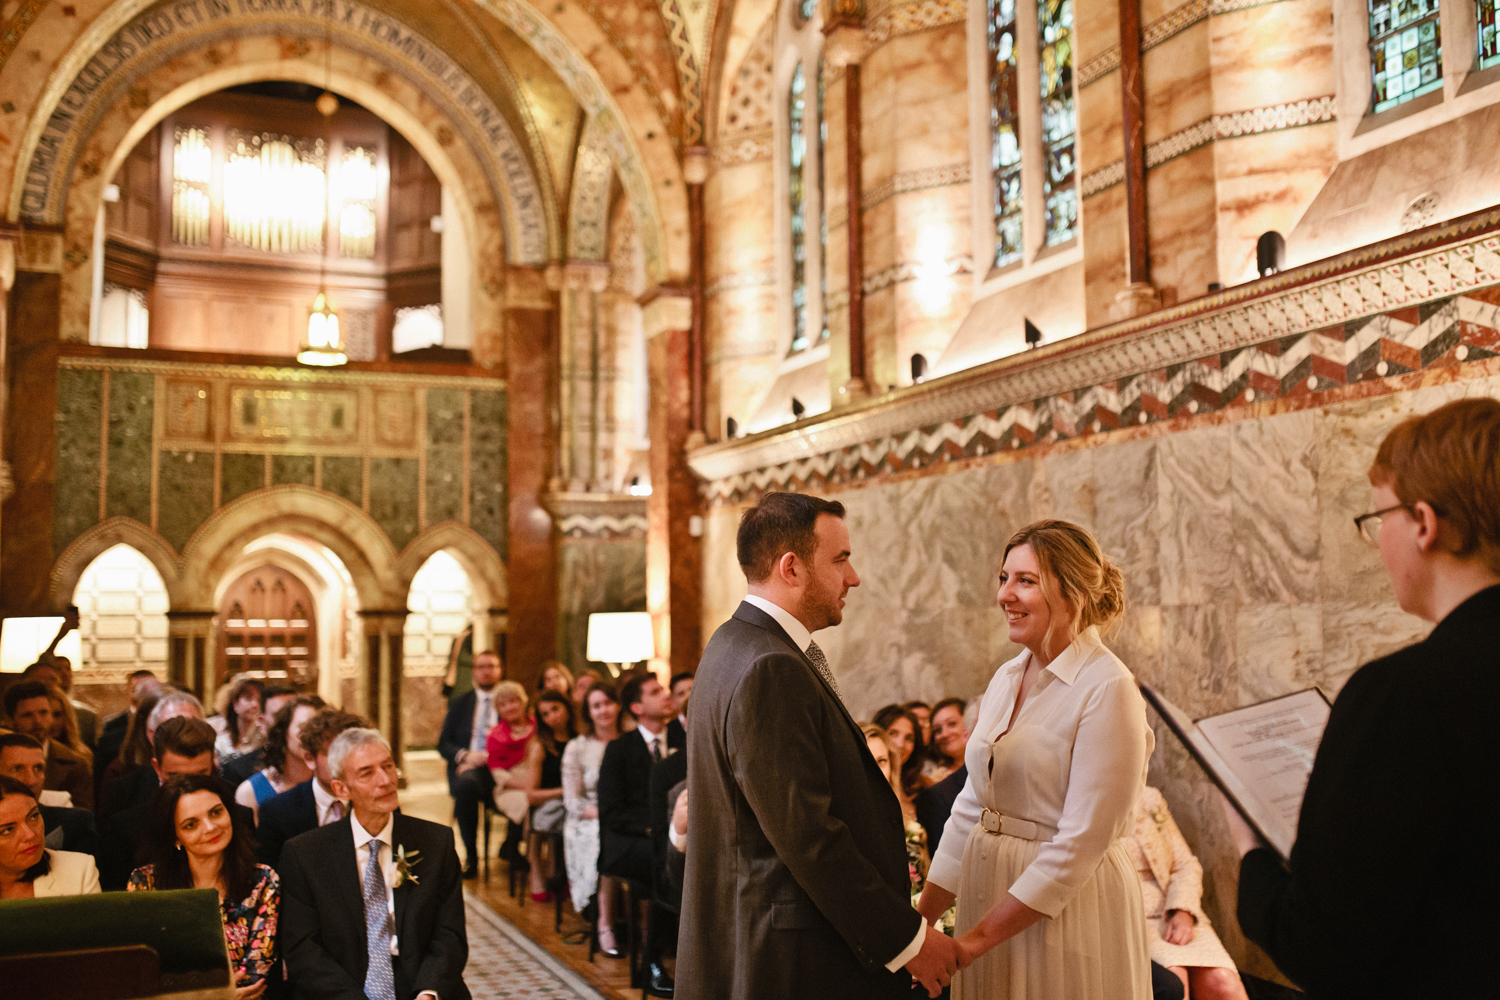 A bride and groom saying their wedding vows in the Fitzrovia Chapel in London photographed by London & Kent Wedding Photographer Matilda Delves